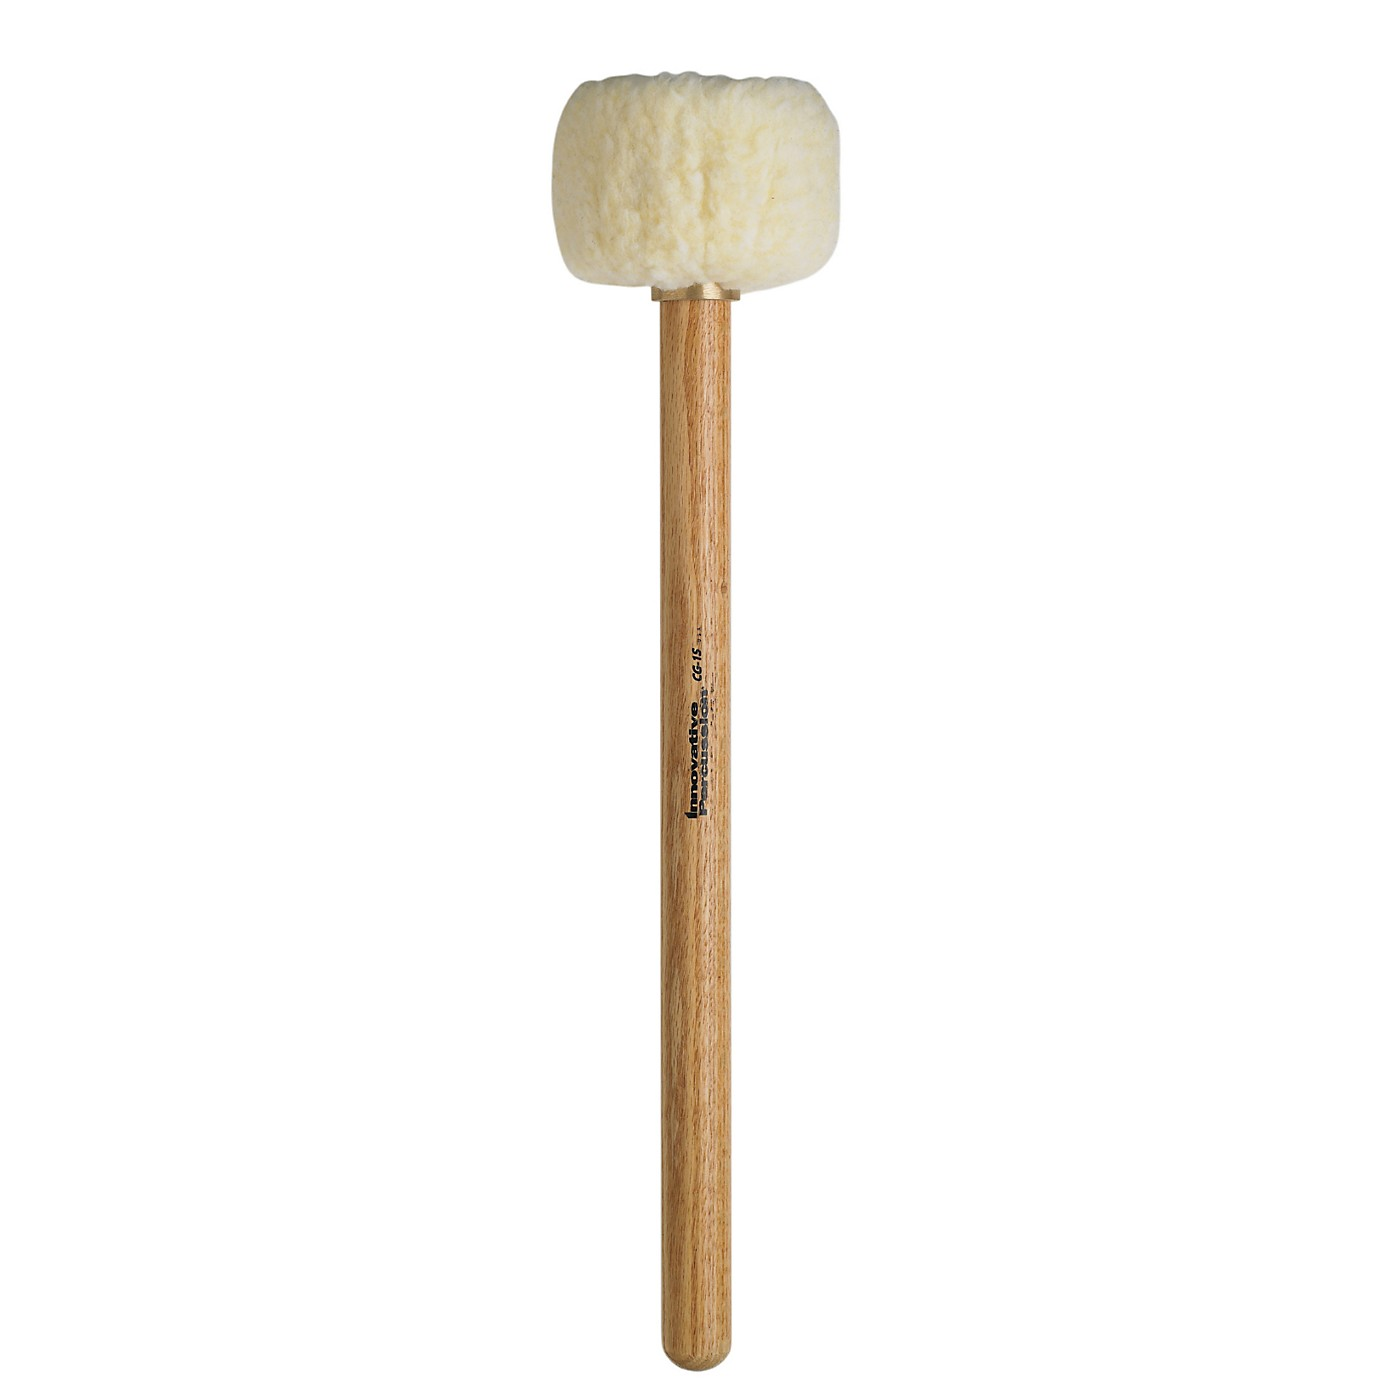 Innovative Percussion Concert Bass Drum Mallet thumbnail